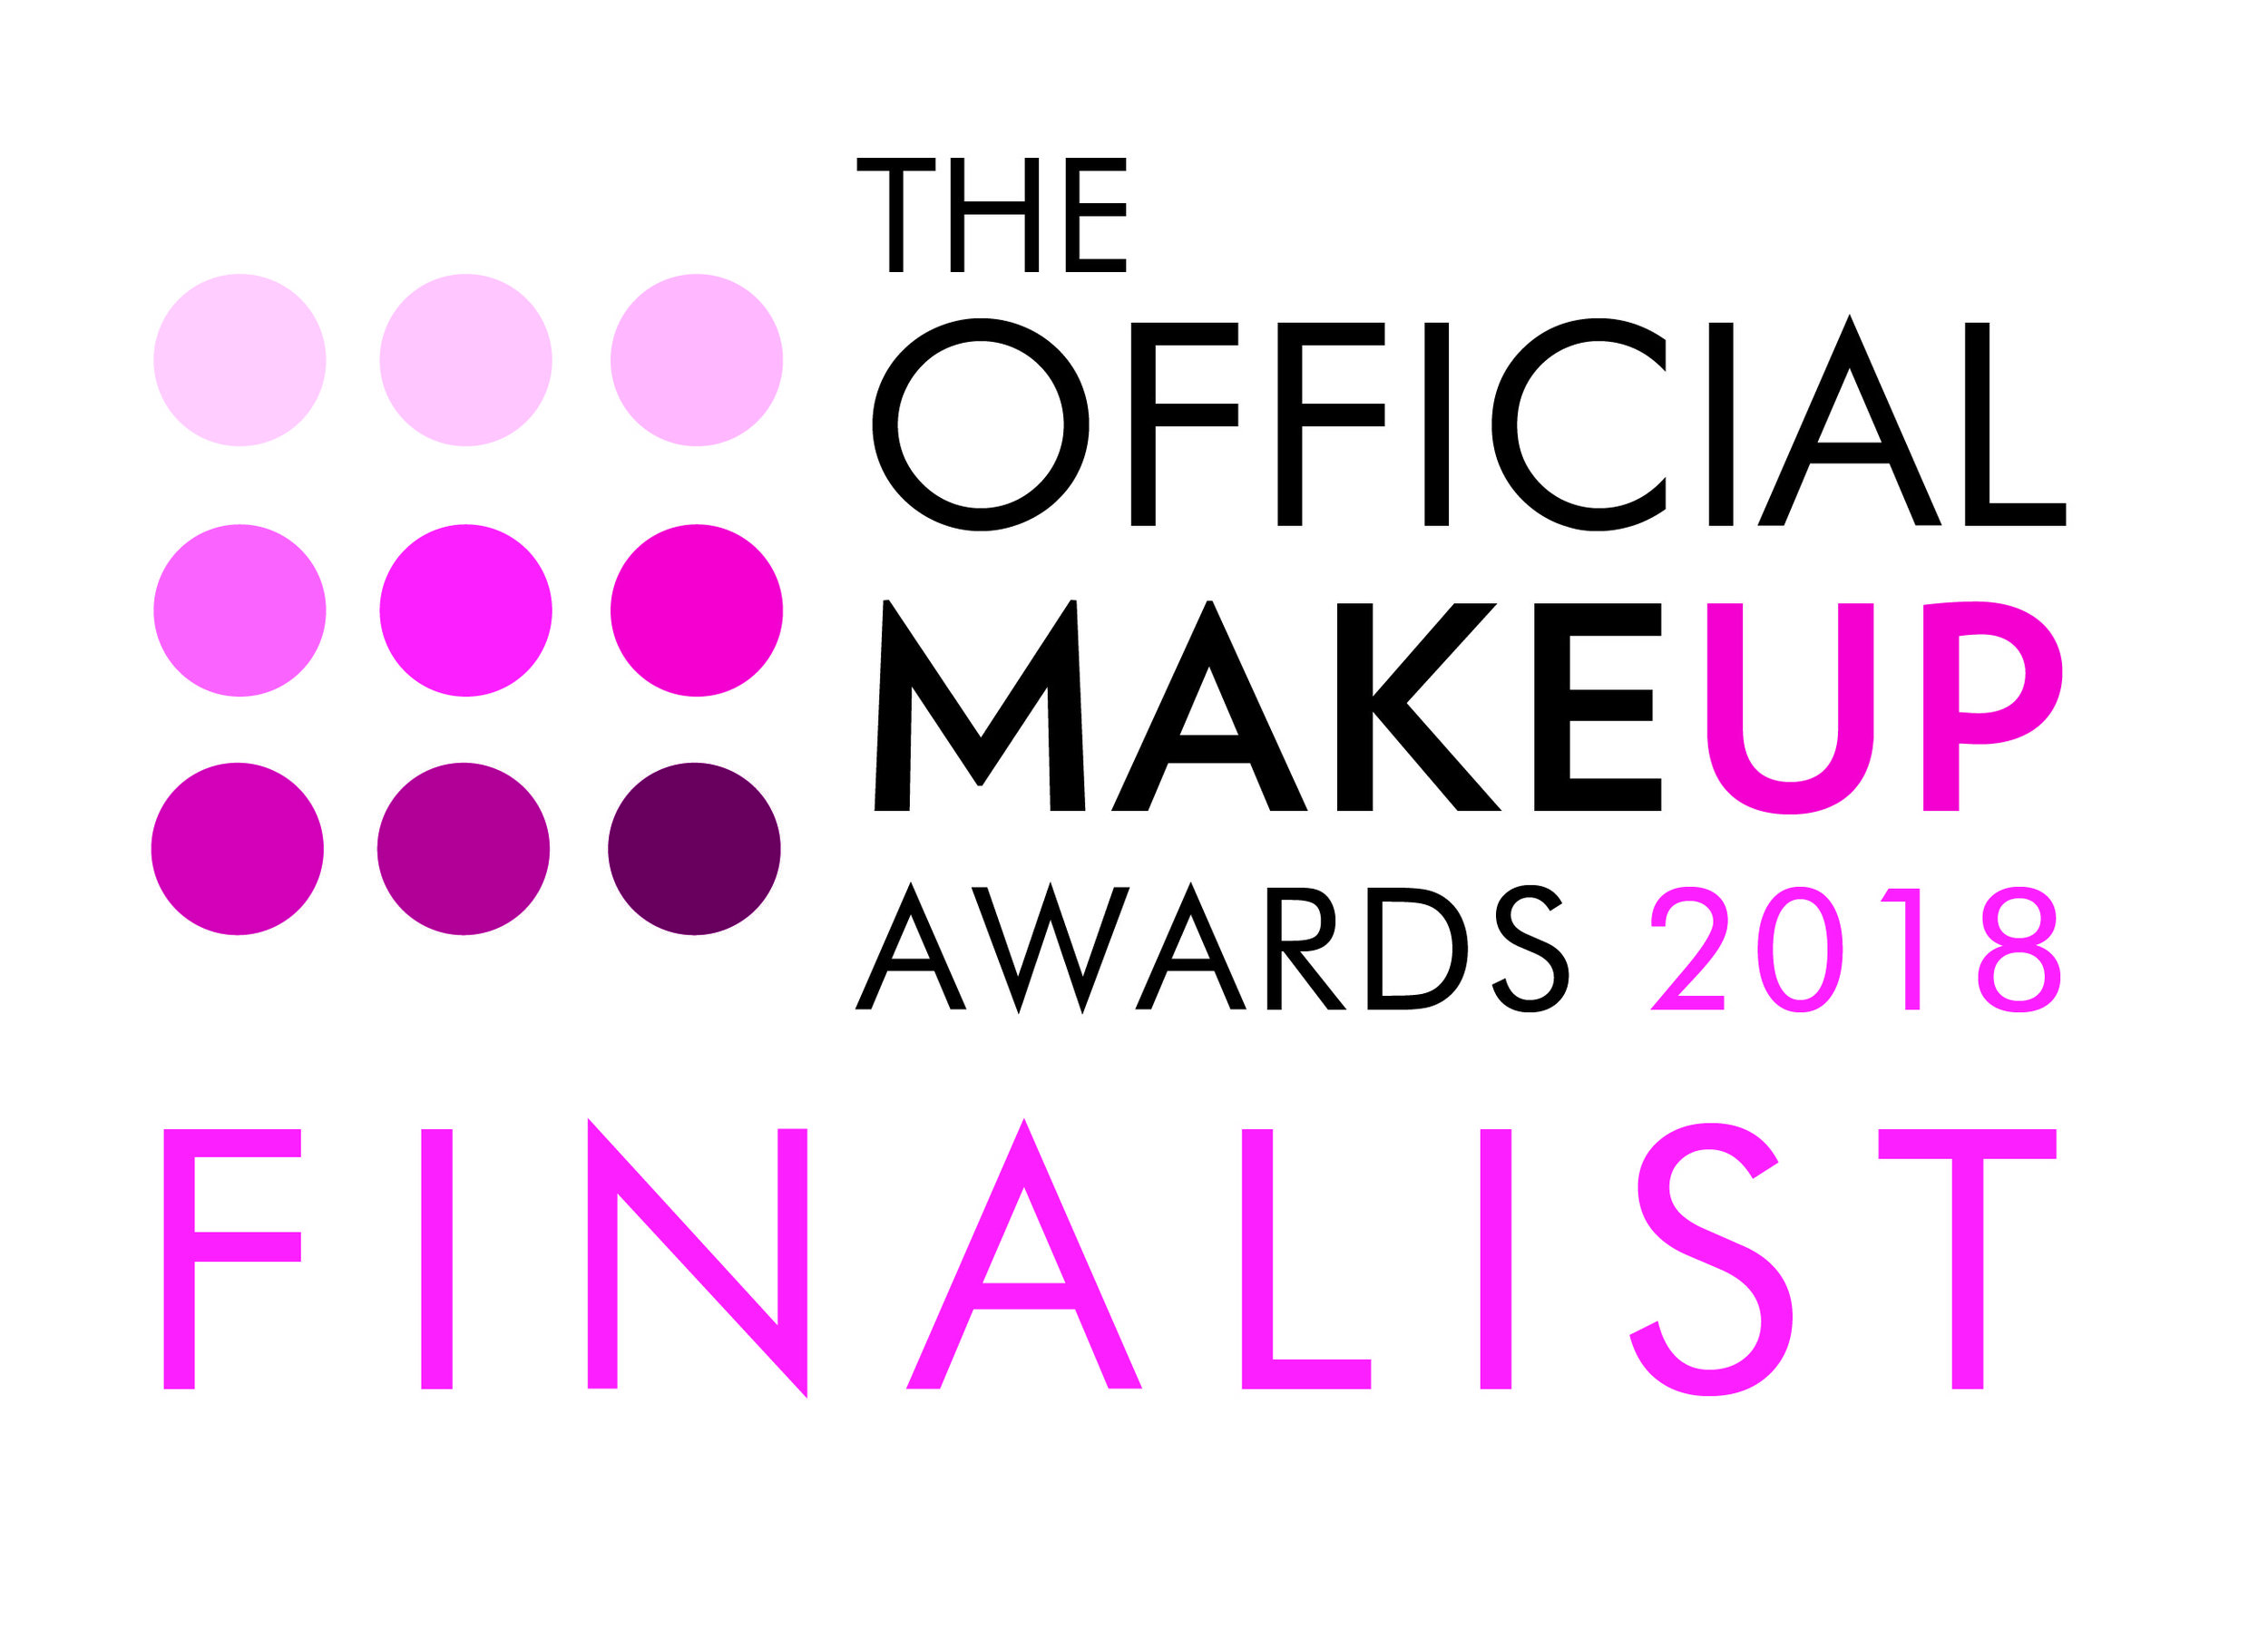 Finalist Logo  The Official Makeup Awards 2018-01.jpg